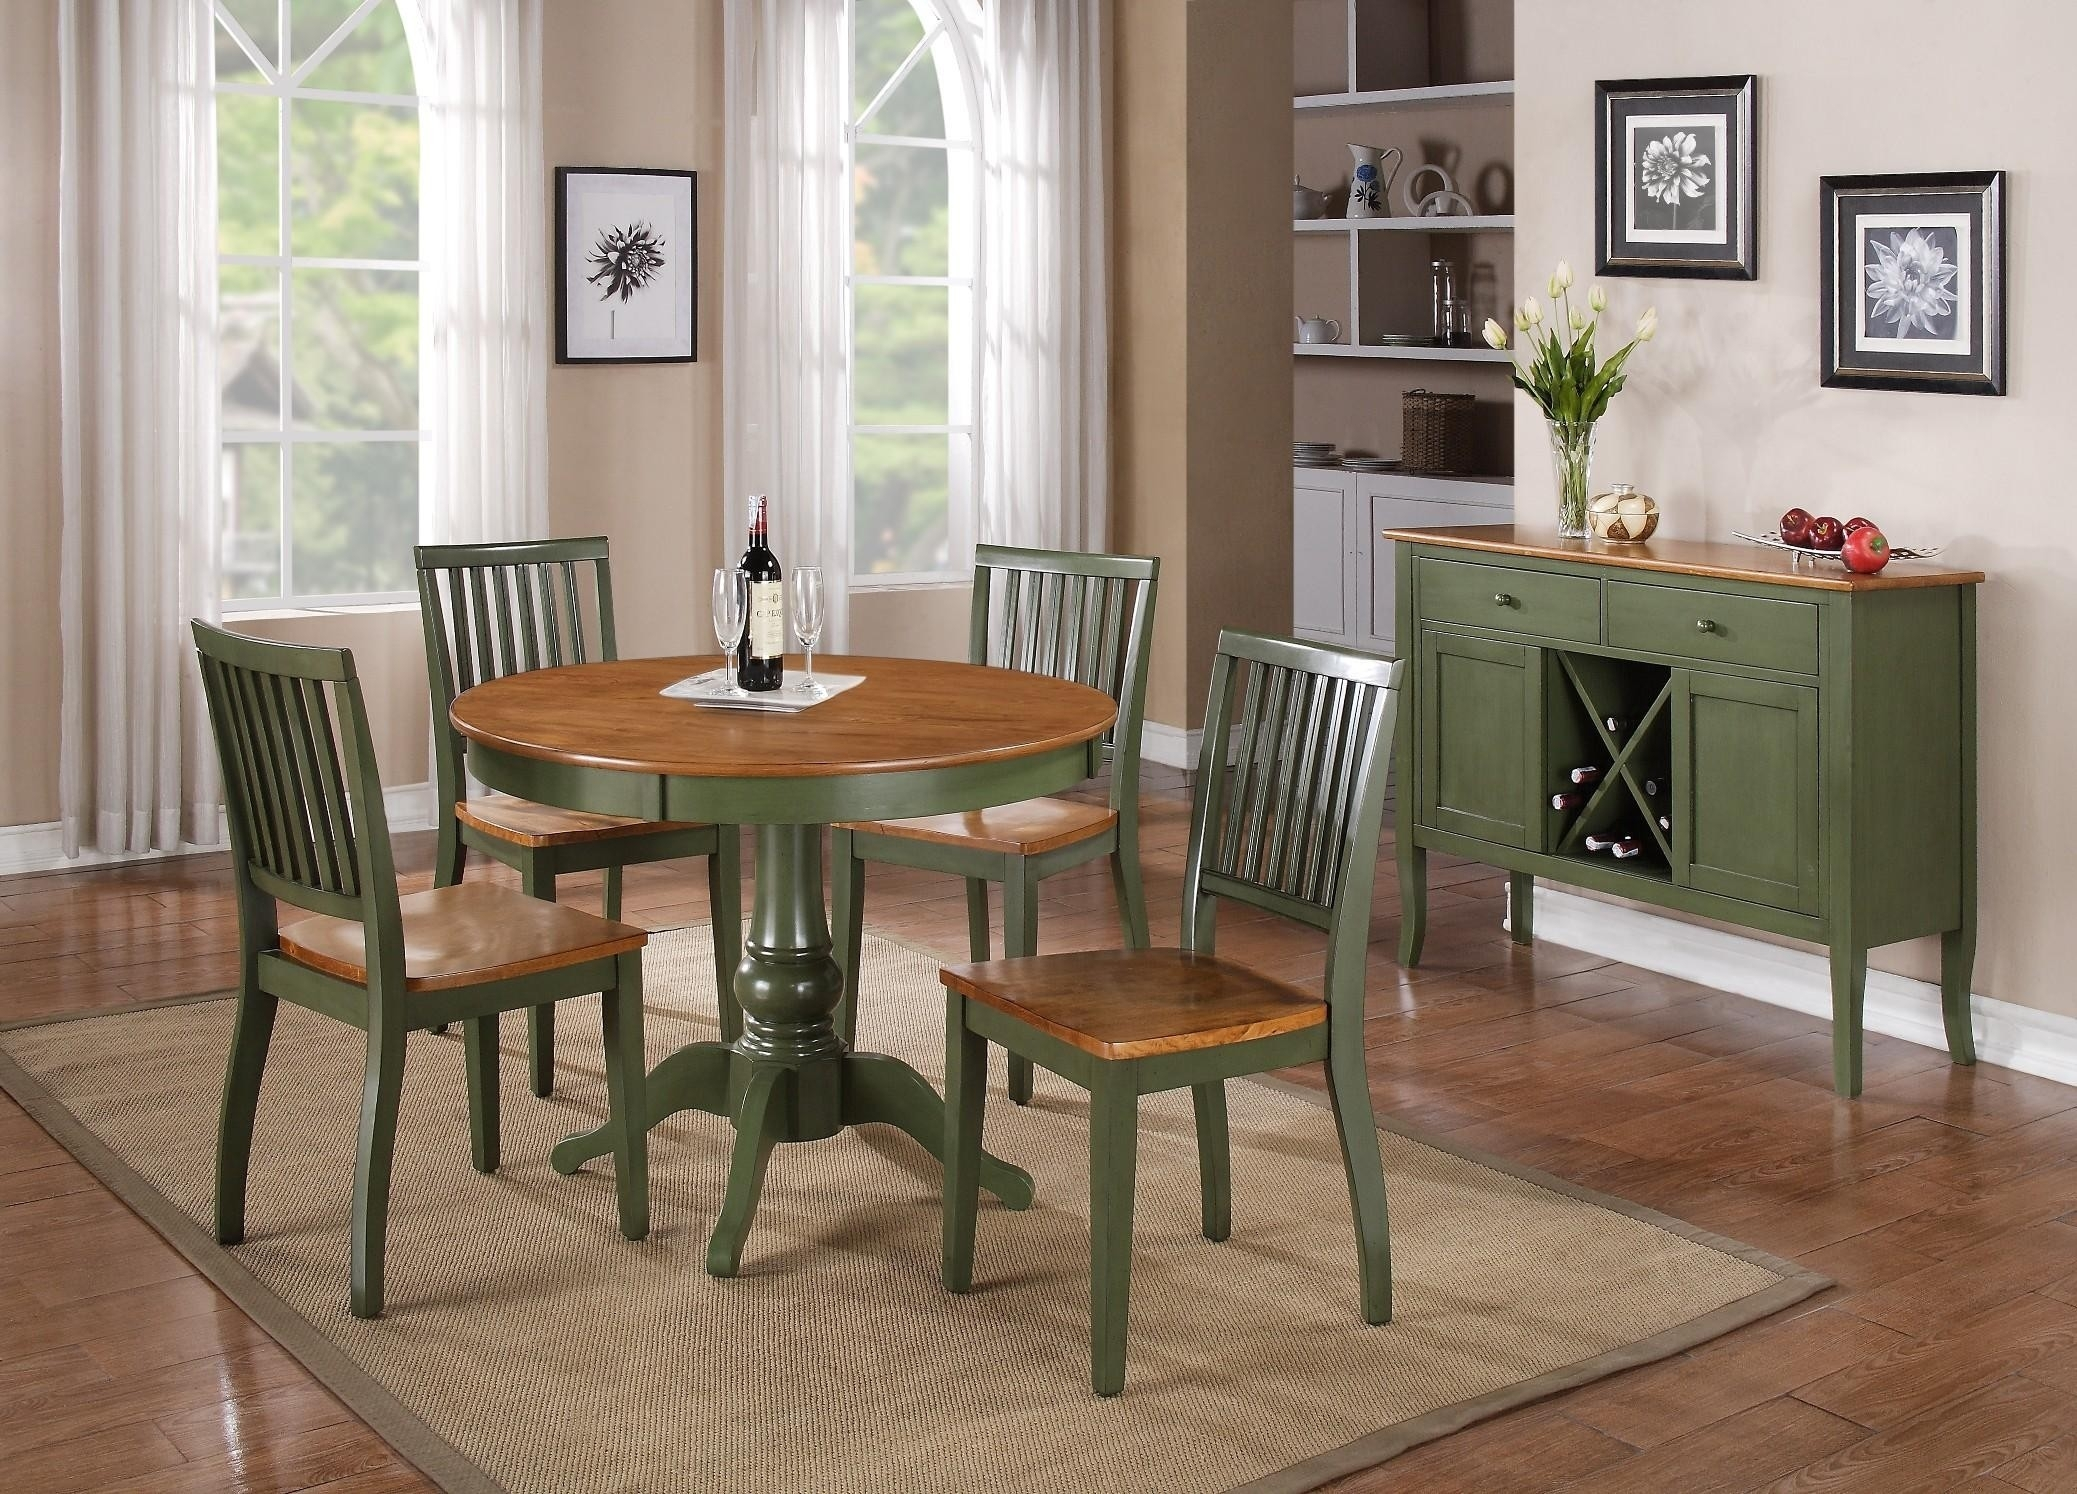 Buy Candice Round Pedestal Dining Room Setsteve Silver From Www Pertaining To Best And Newest Candice Ii Round Dining Tables (View 4 of 20)